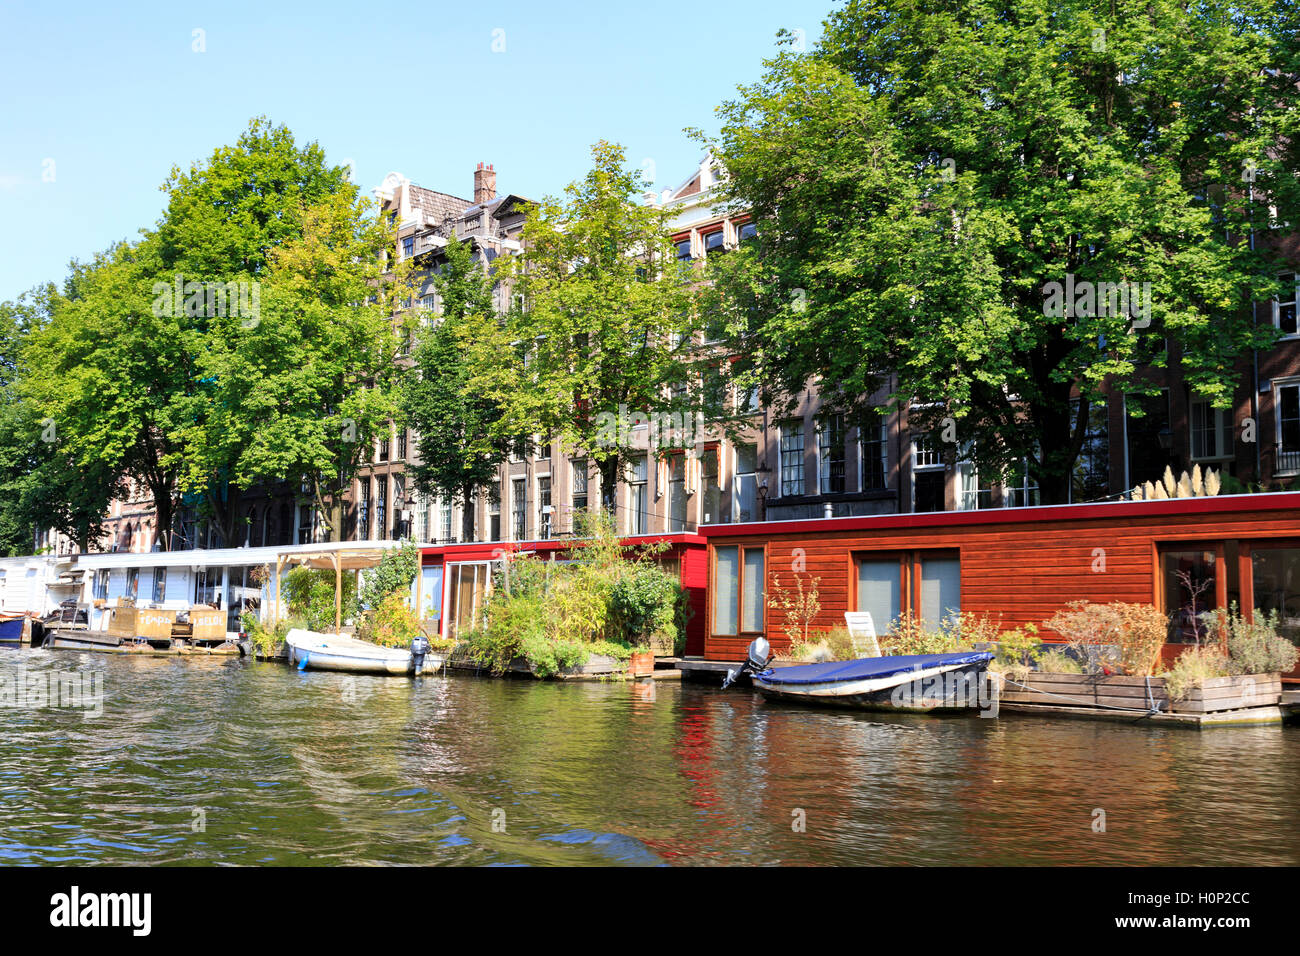 General view of buildings alongside the canal in Amsterdam - Stock Image